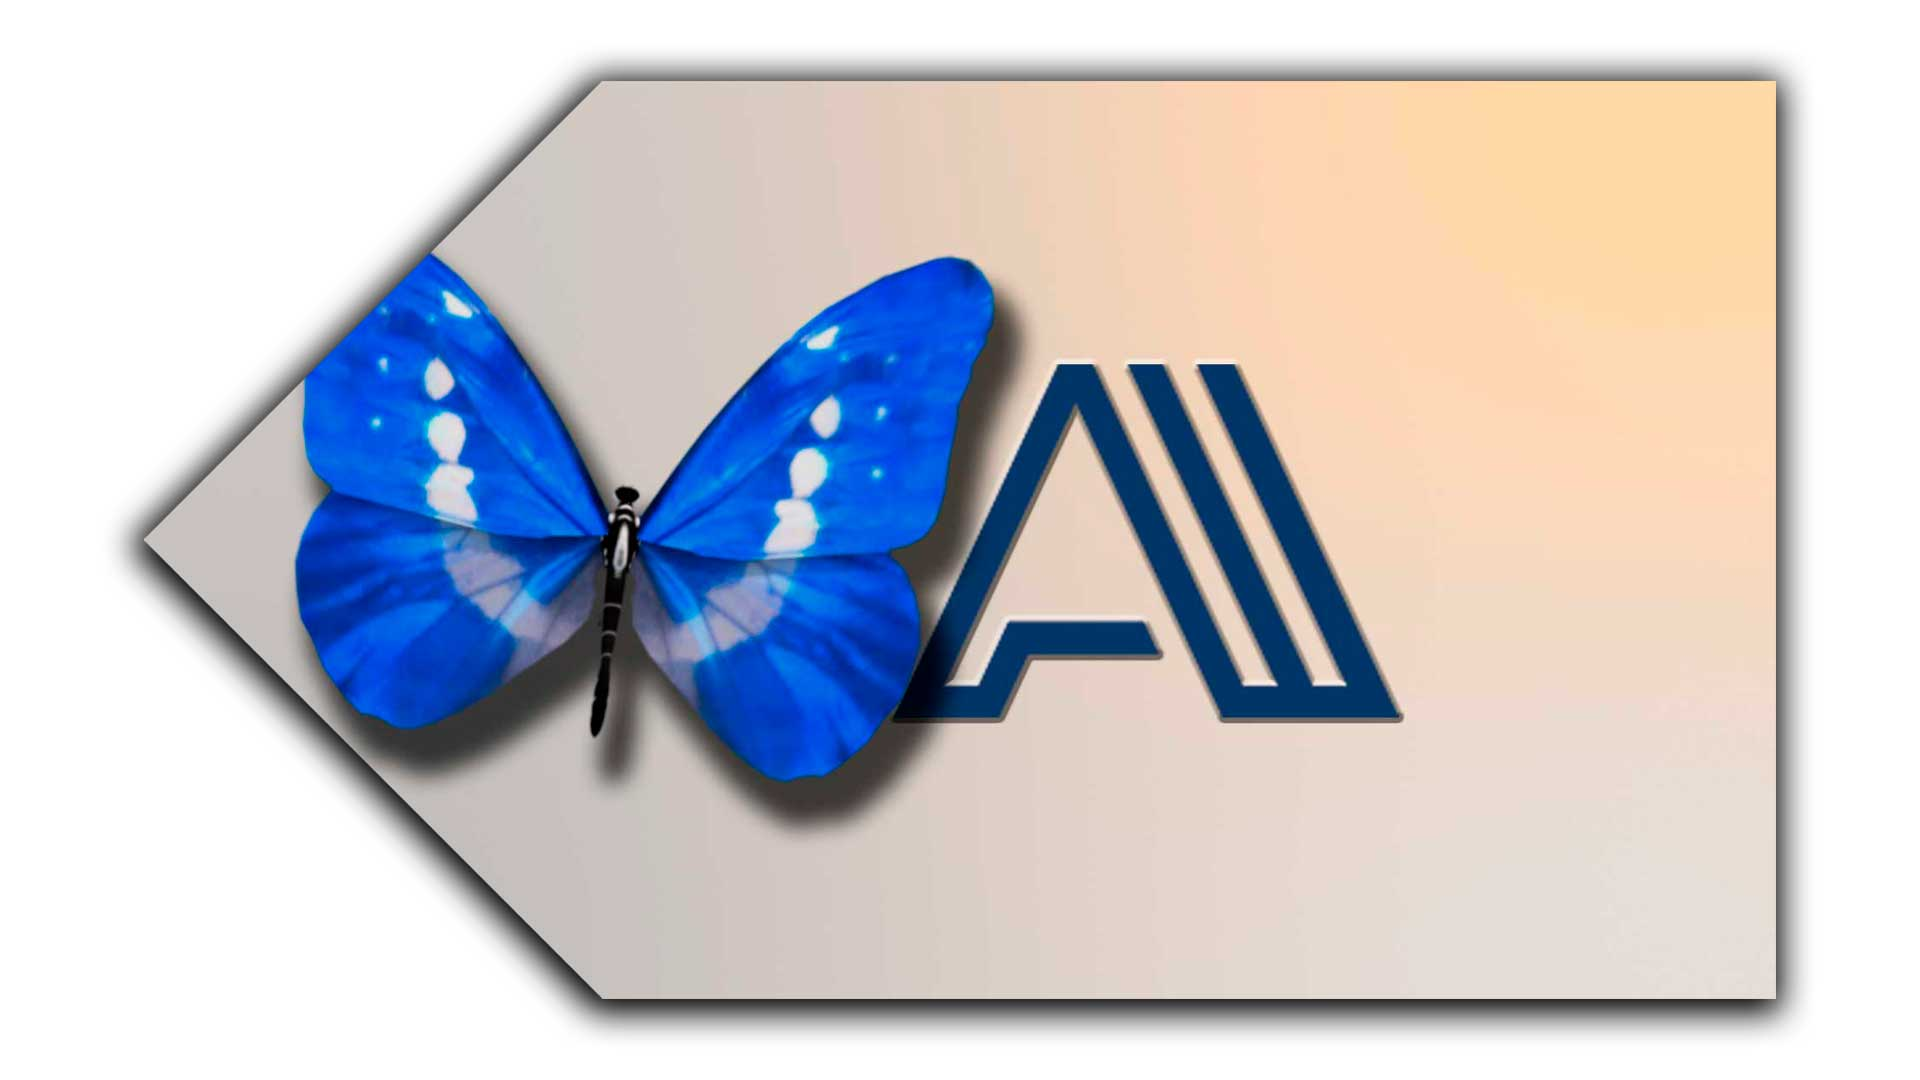 Ver-con-mariposas-animarlogo-blog